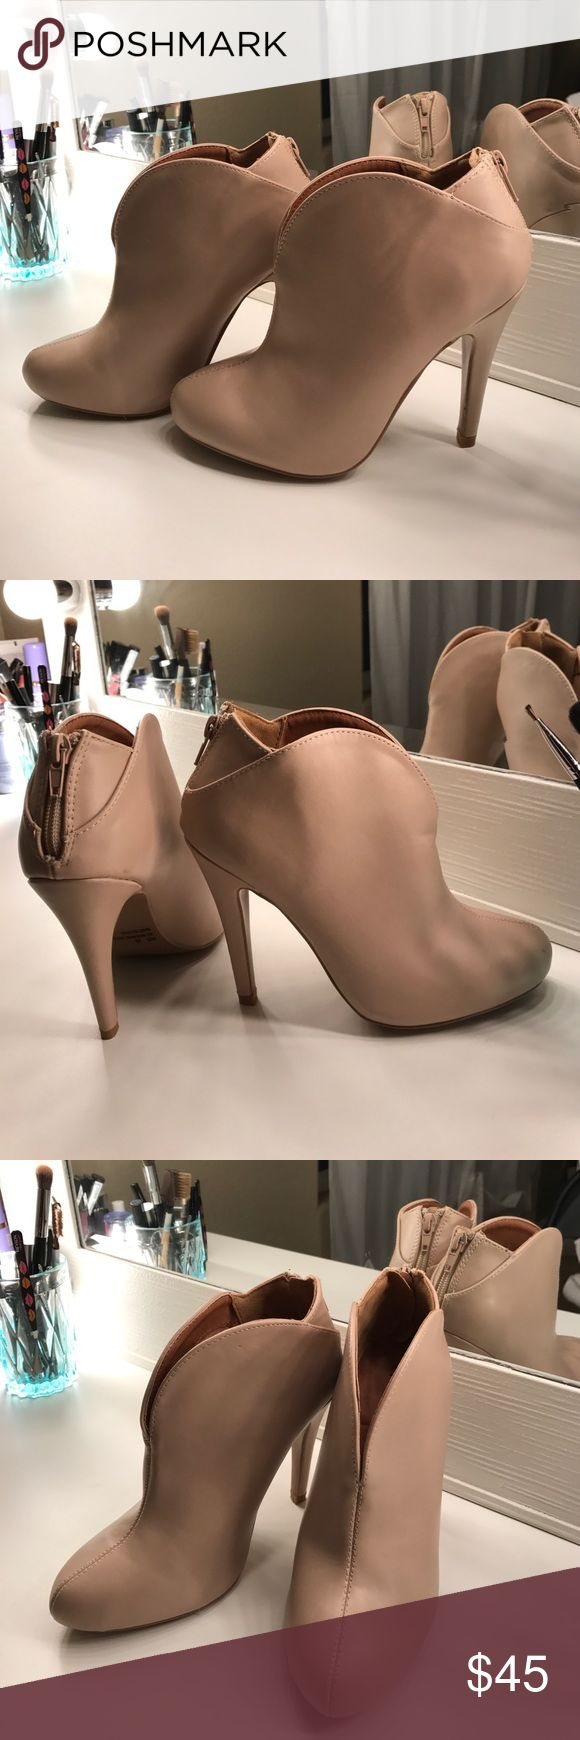 Nude ankle boots Sassy cute ankle boots, very comfortable. Leather like material, NWOT. Shoes Ankle Boots & Booties